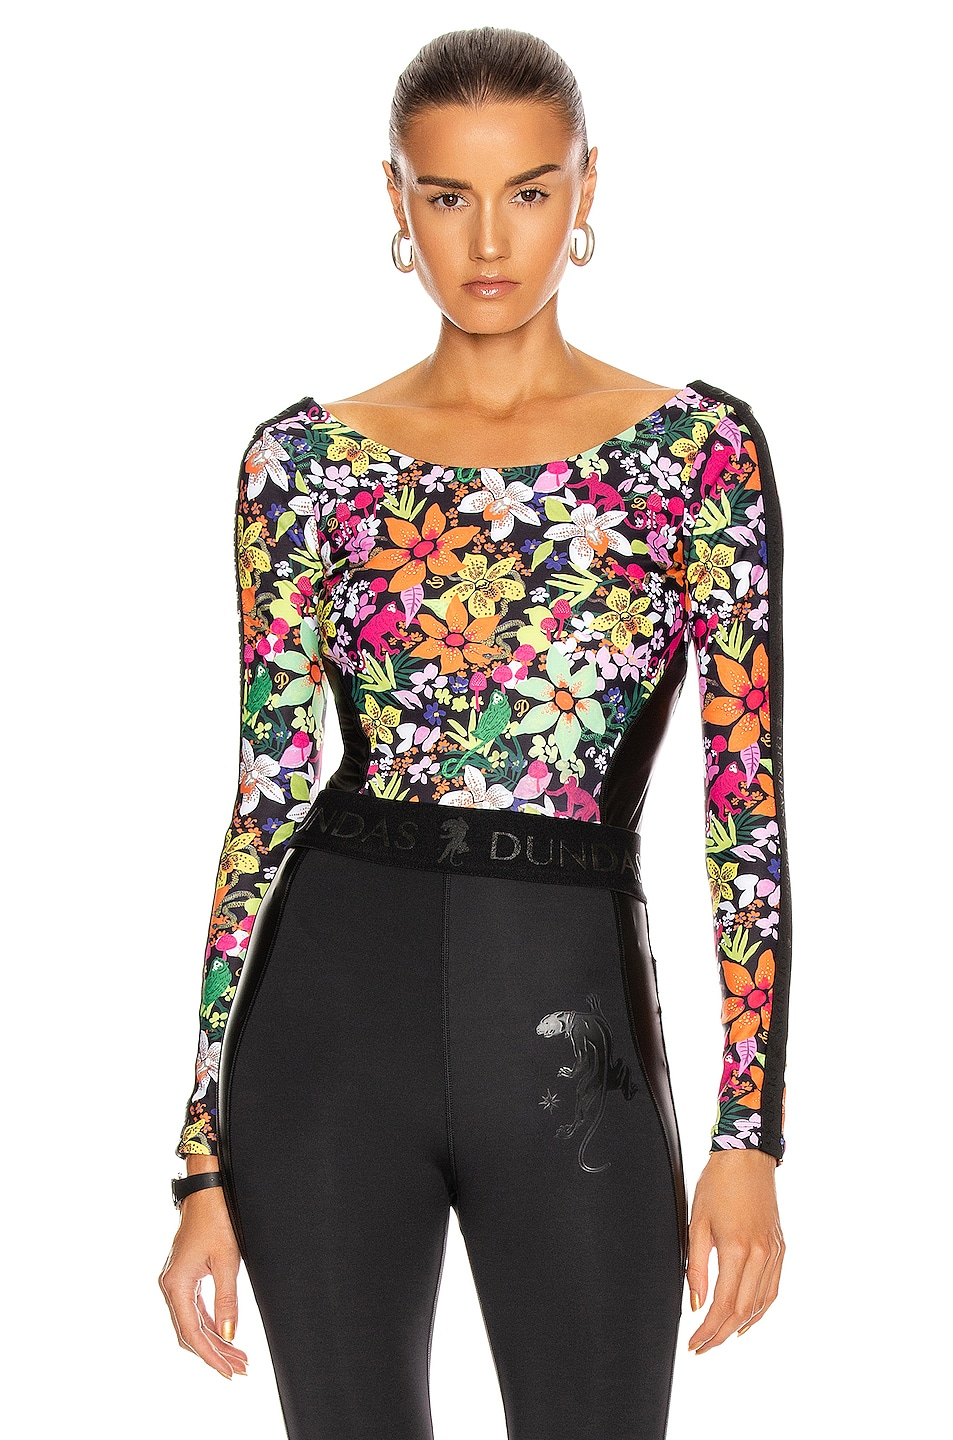 Image 1 of Dundas for FWRD Bodysuit in Floral Print